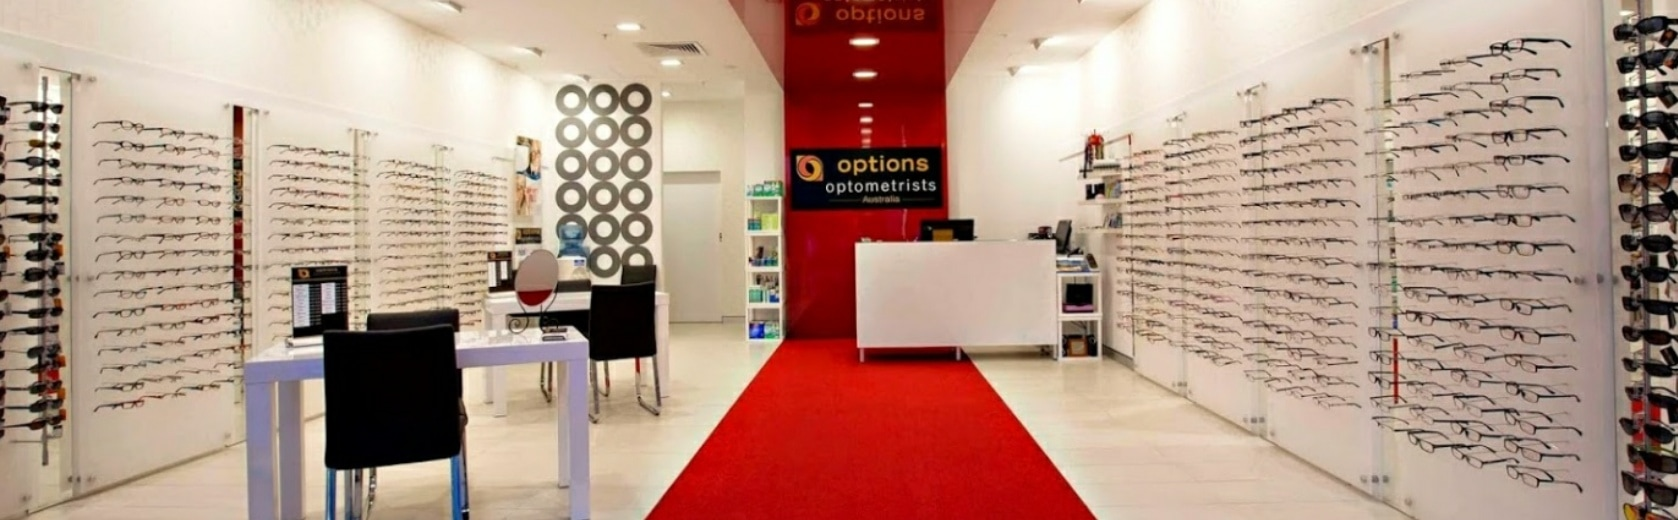 Options Optometrists Franchising Opportunities